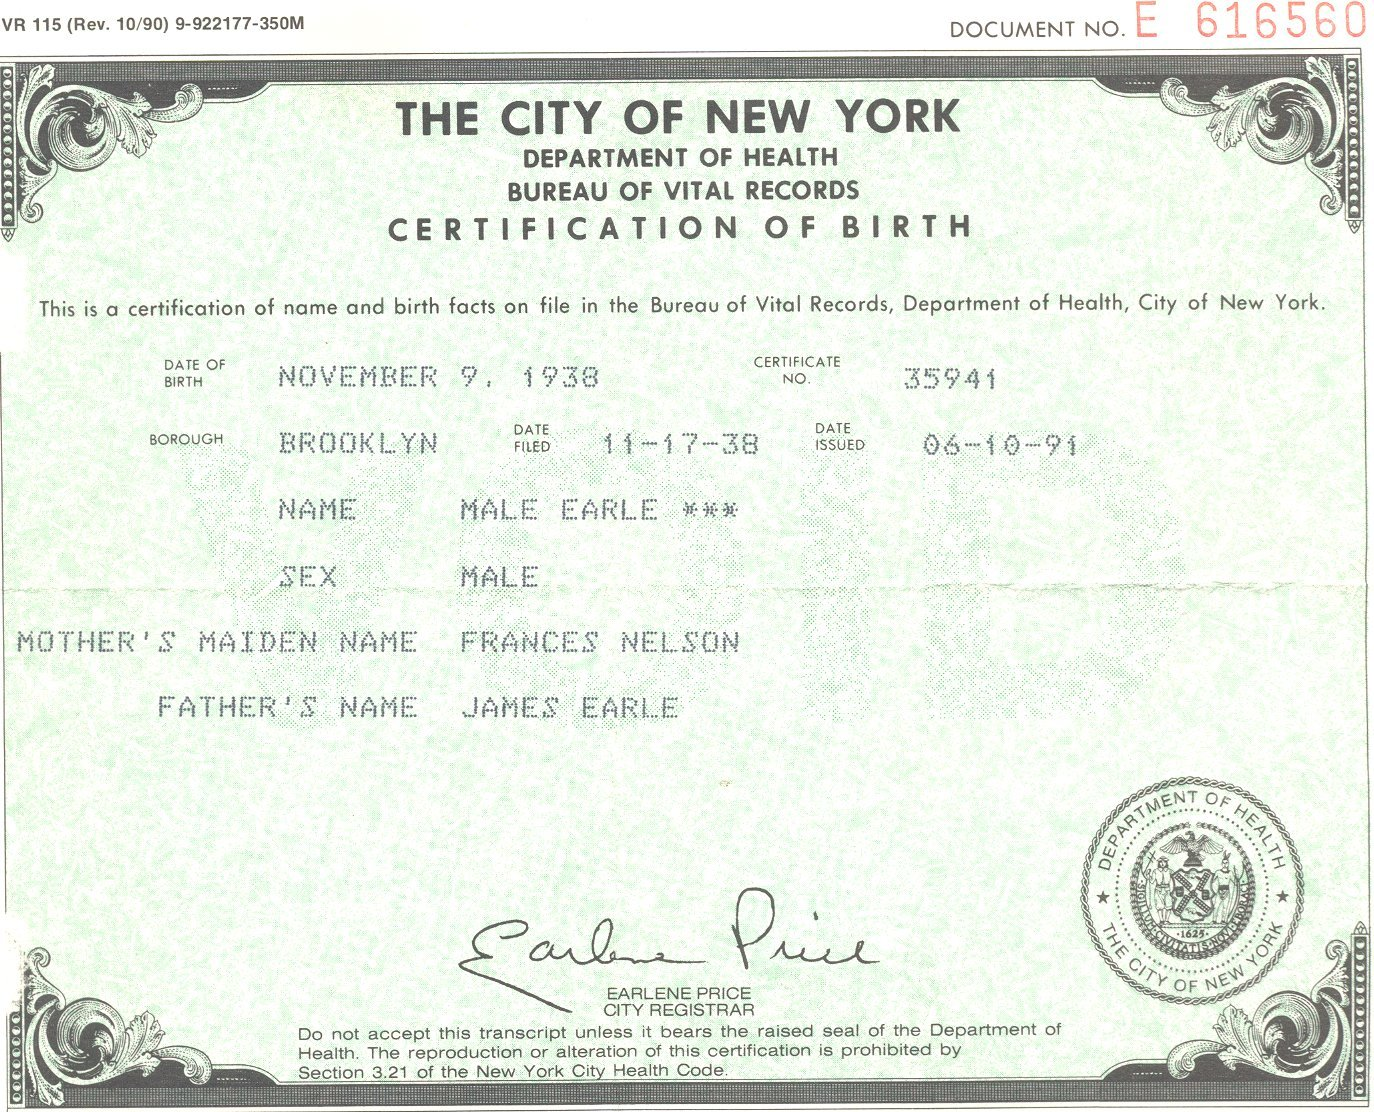 Missouri birth certificate 1betcityfo Image collections